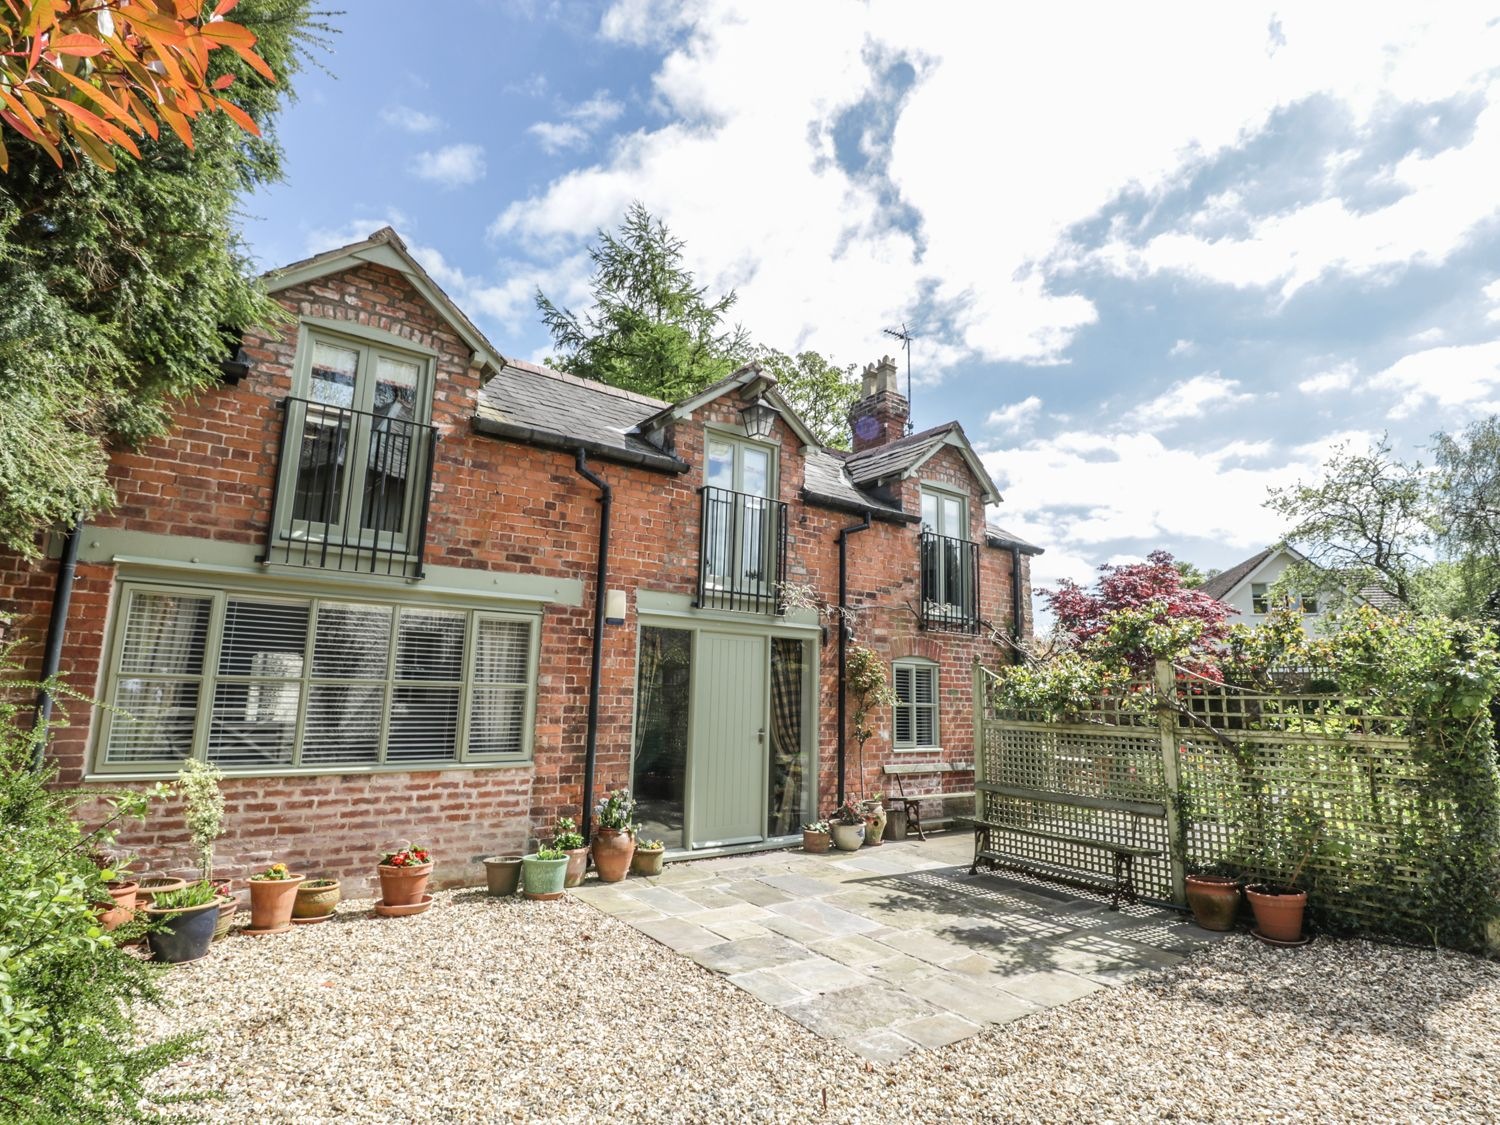 The Coach House in Christleton - sleeps 2 people